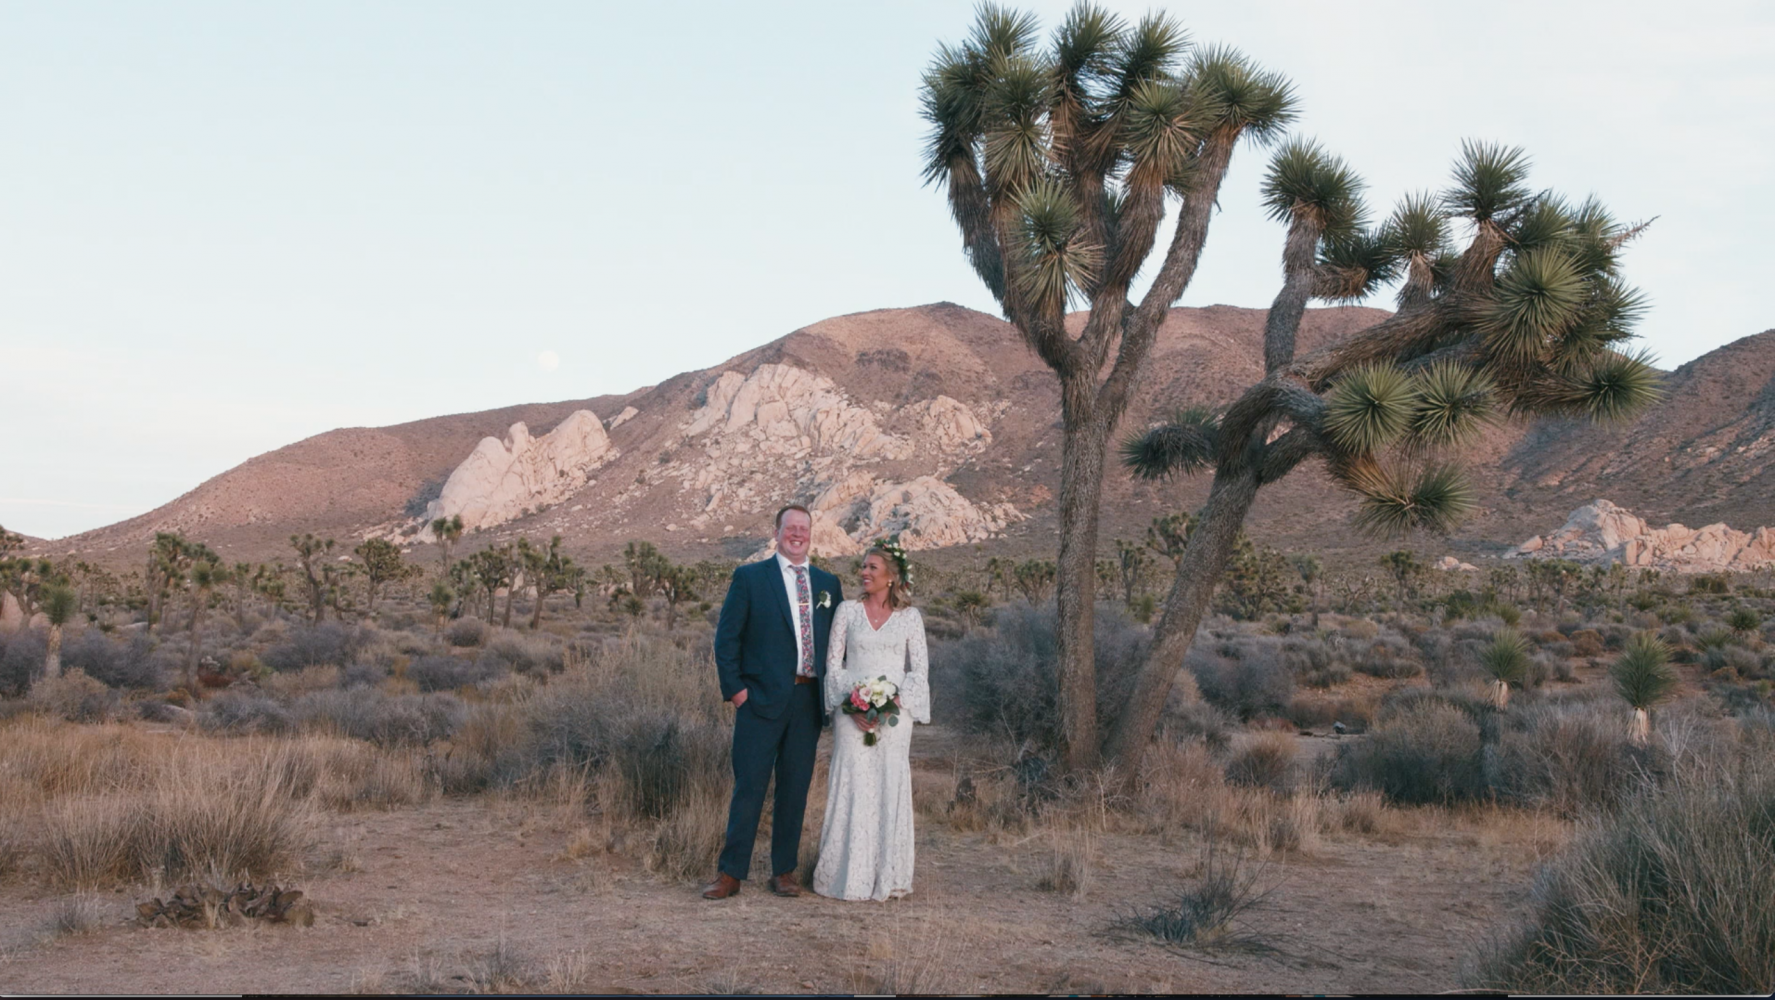 Whitney + Brandon | Joshua Tree , California | Joshua Tree National Park